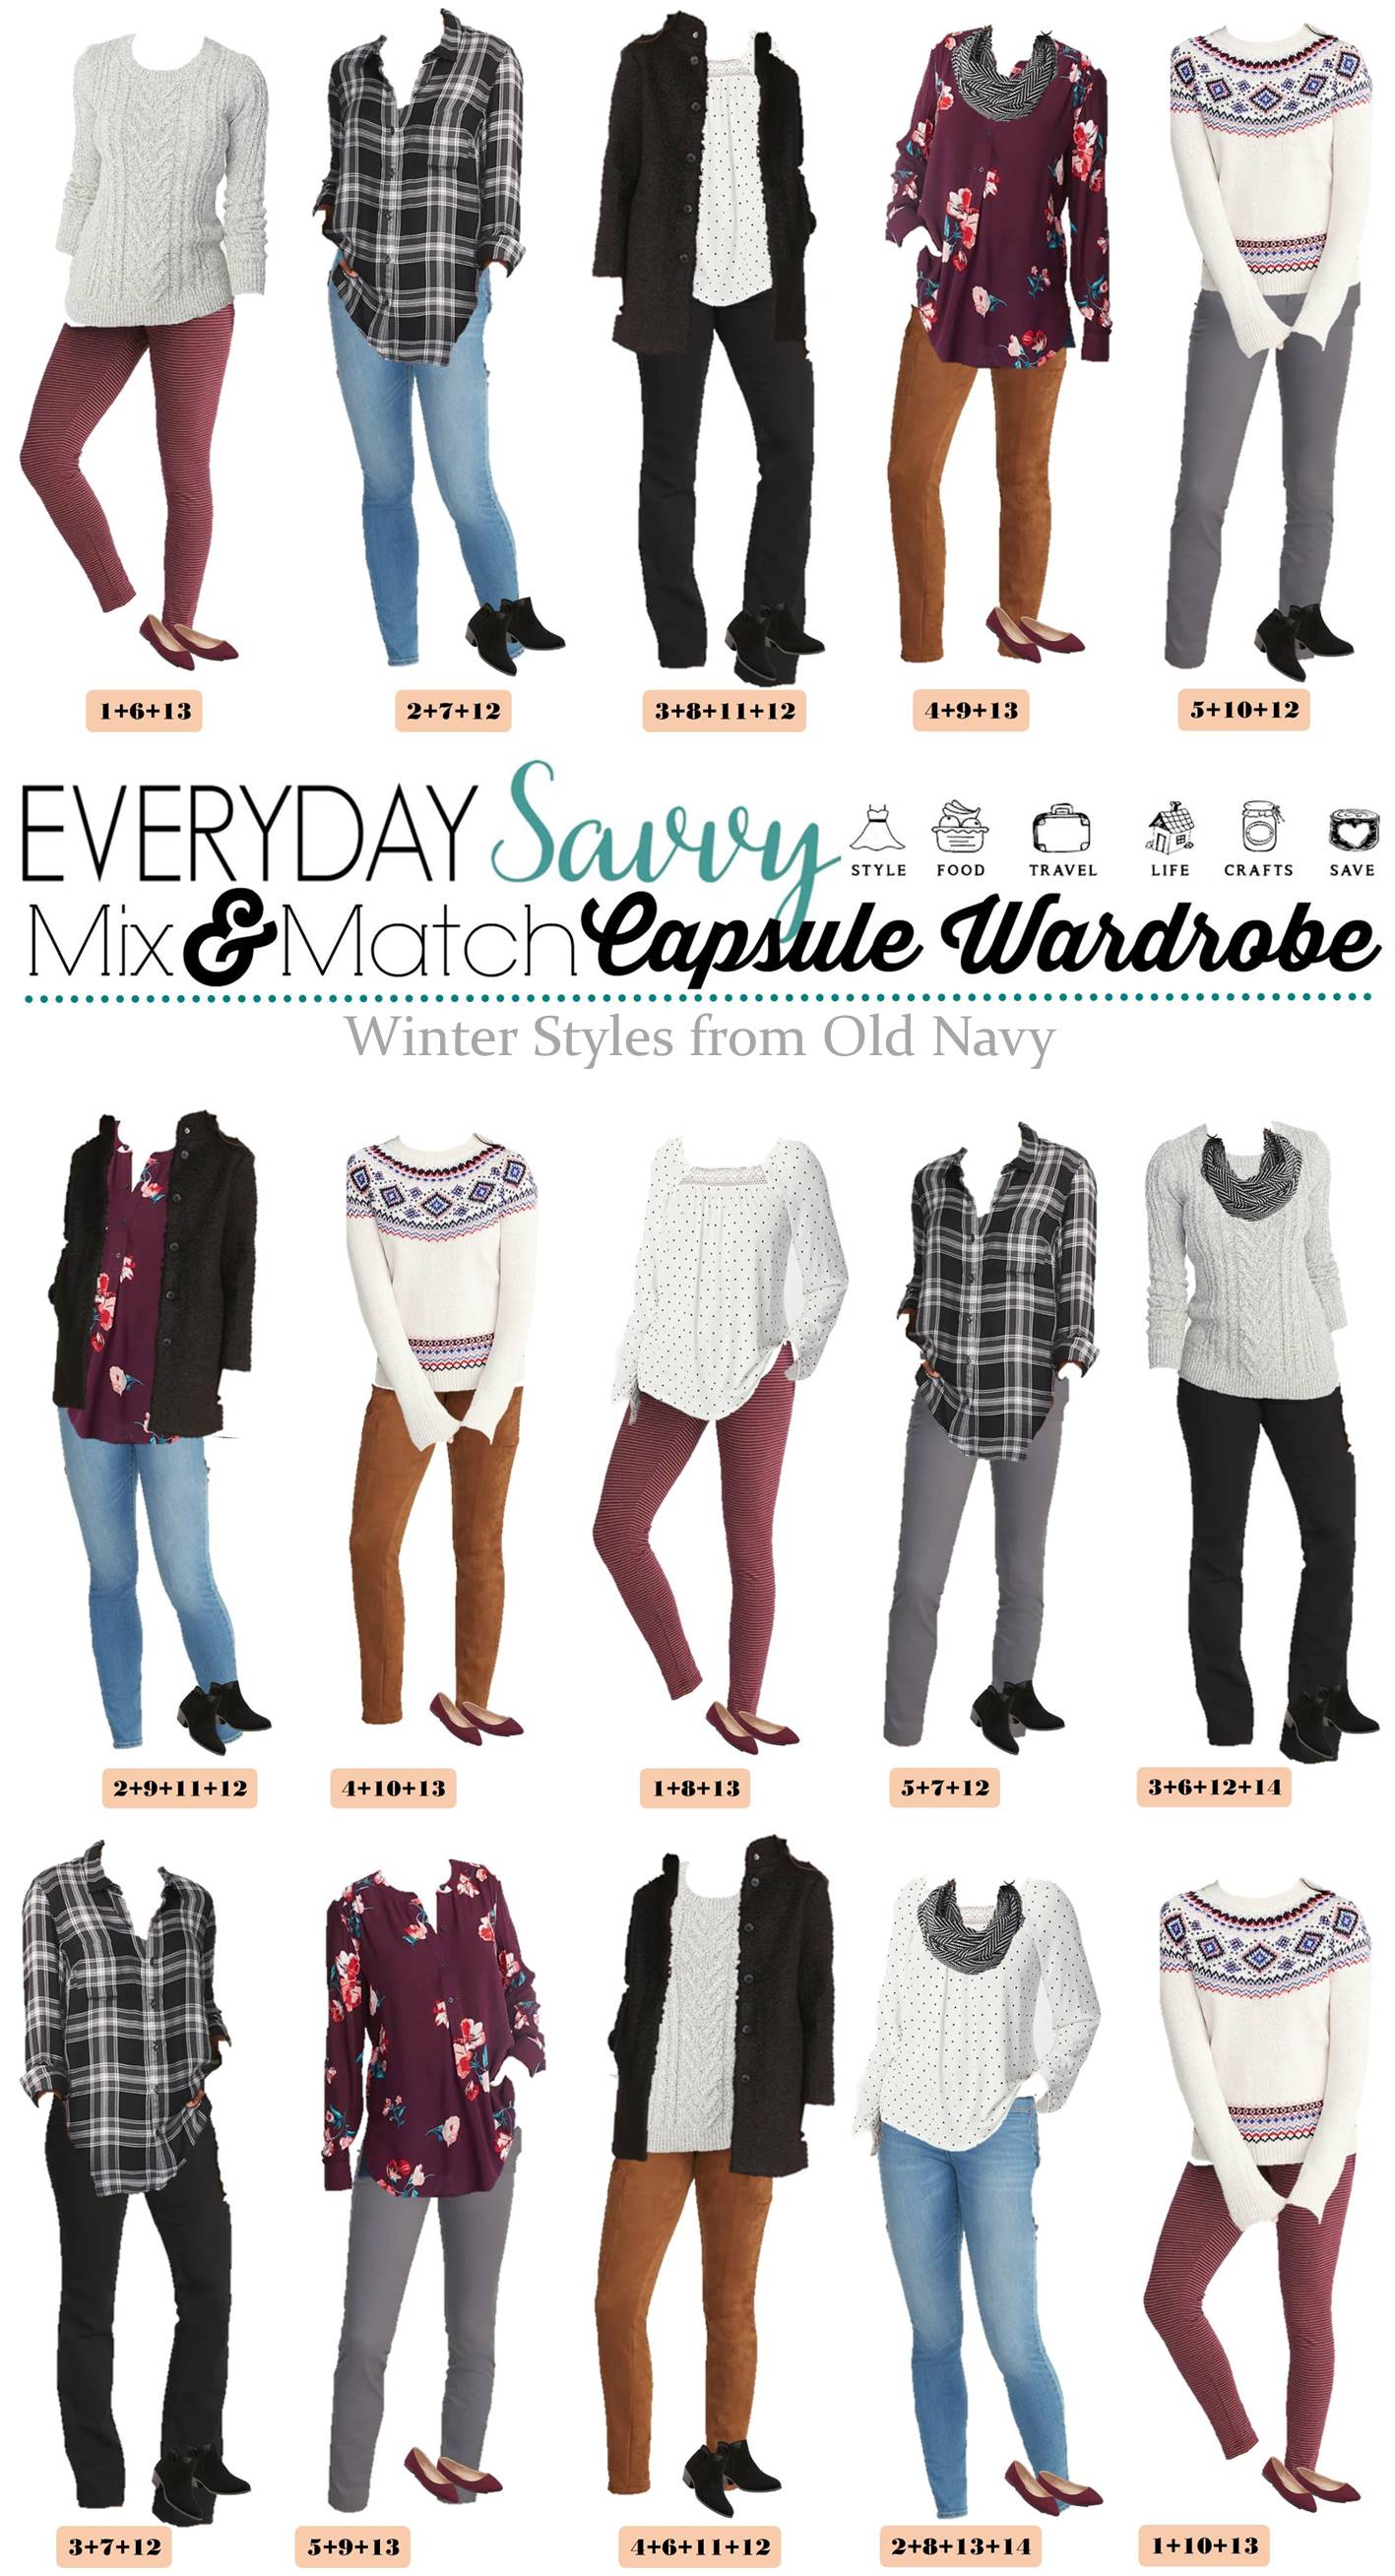 mix match cute winter outfits from old navy mini capsule wardrobe